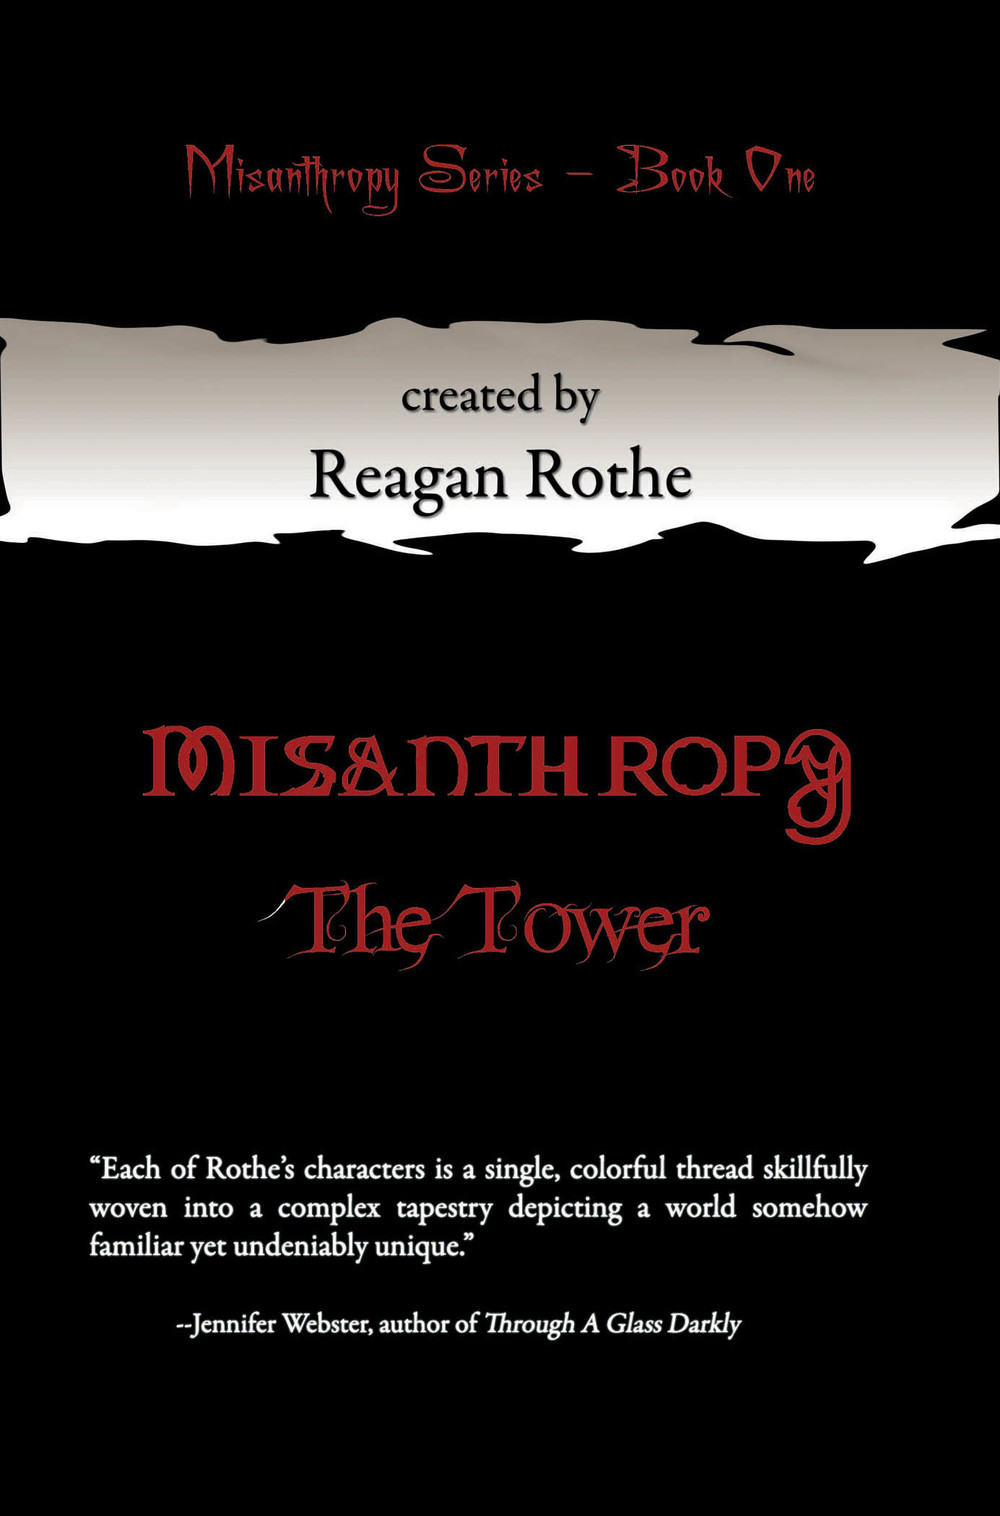 The Tower eimage.jpg